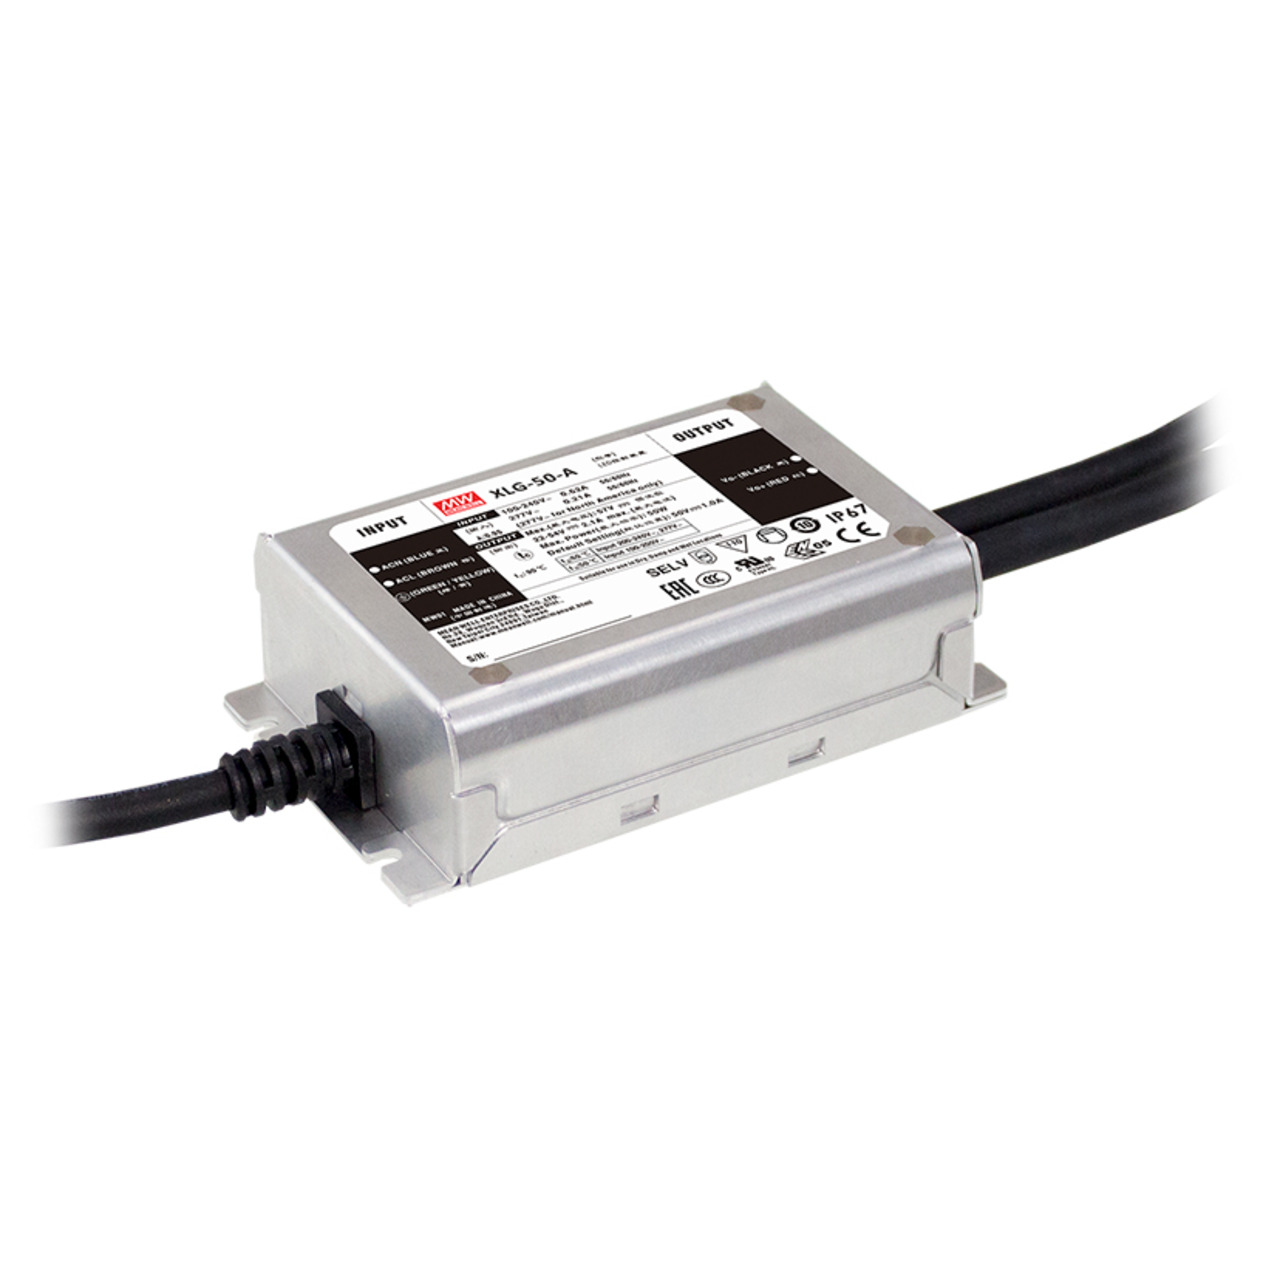 Mean Well Konstantstrom-Netzteil XLG-50-AB- 50 W- 1000 mA- 22 - 54 VDC dimmbar- IP67